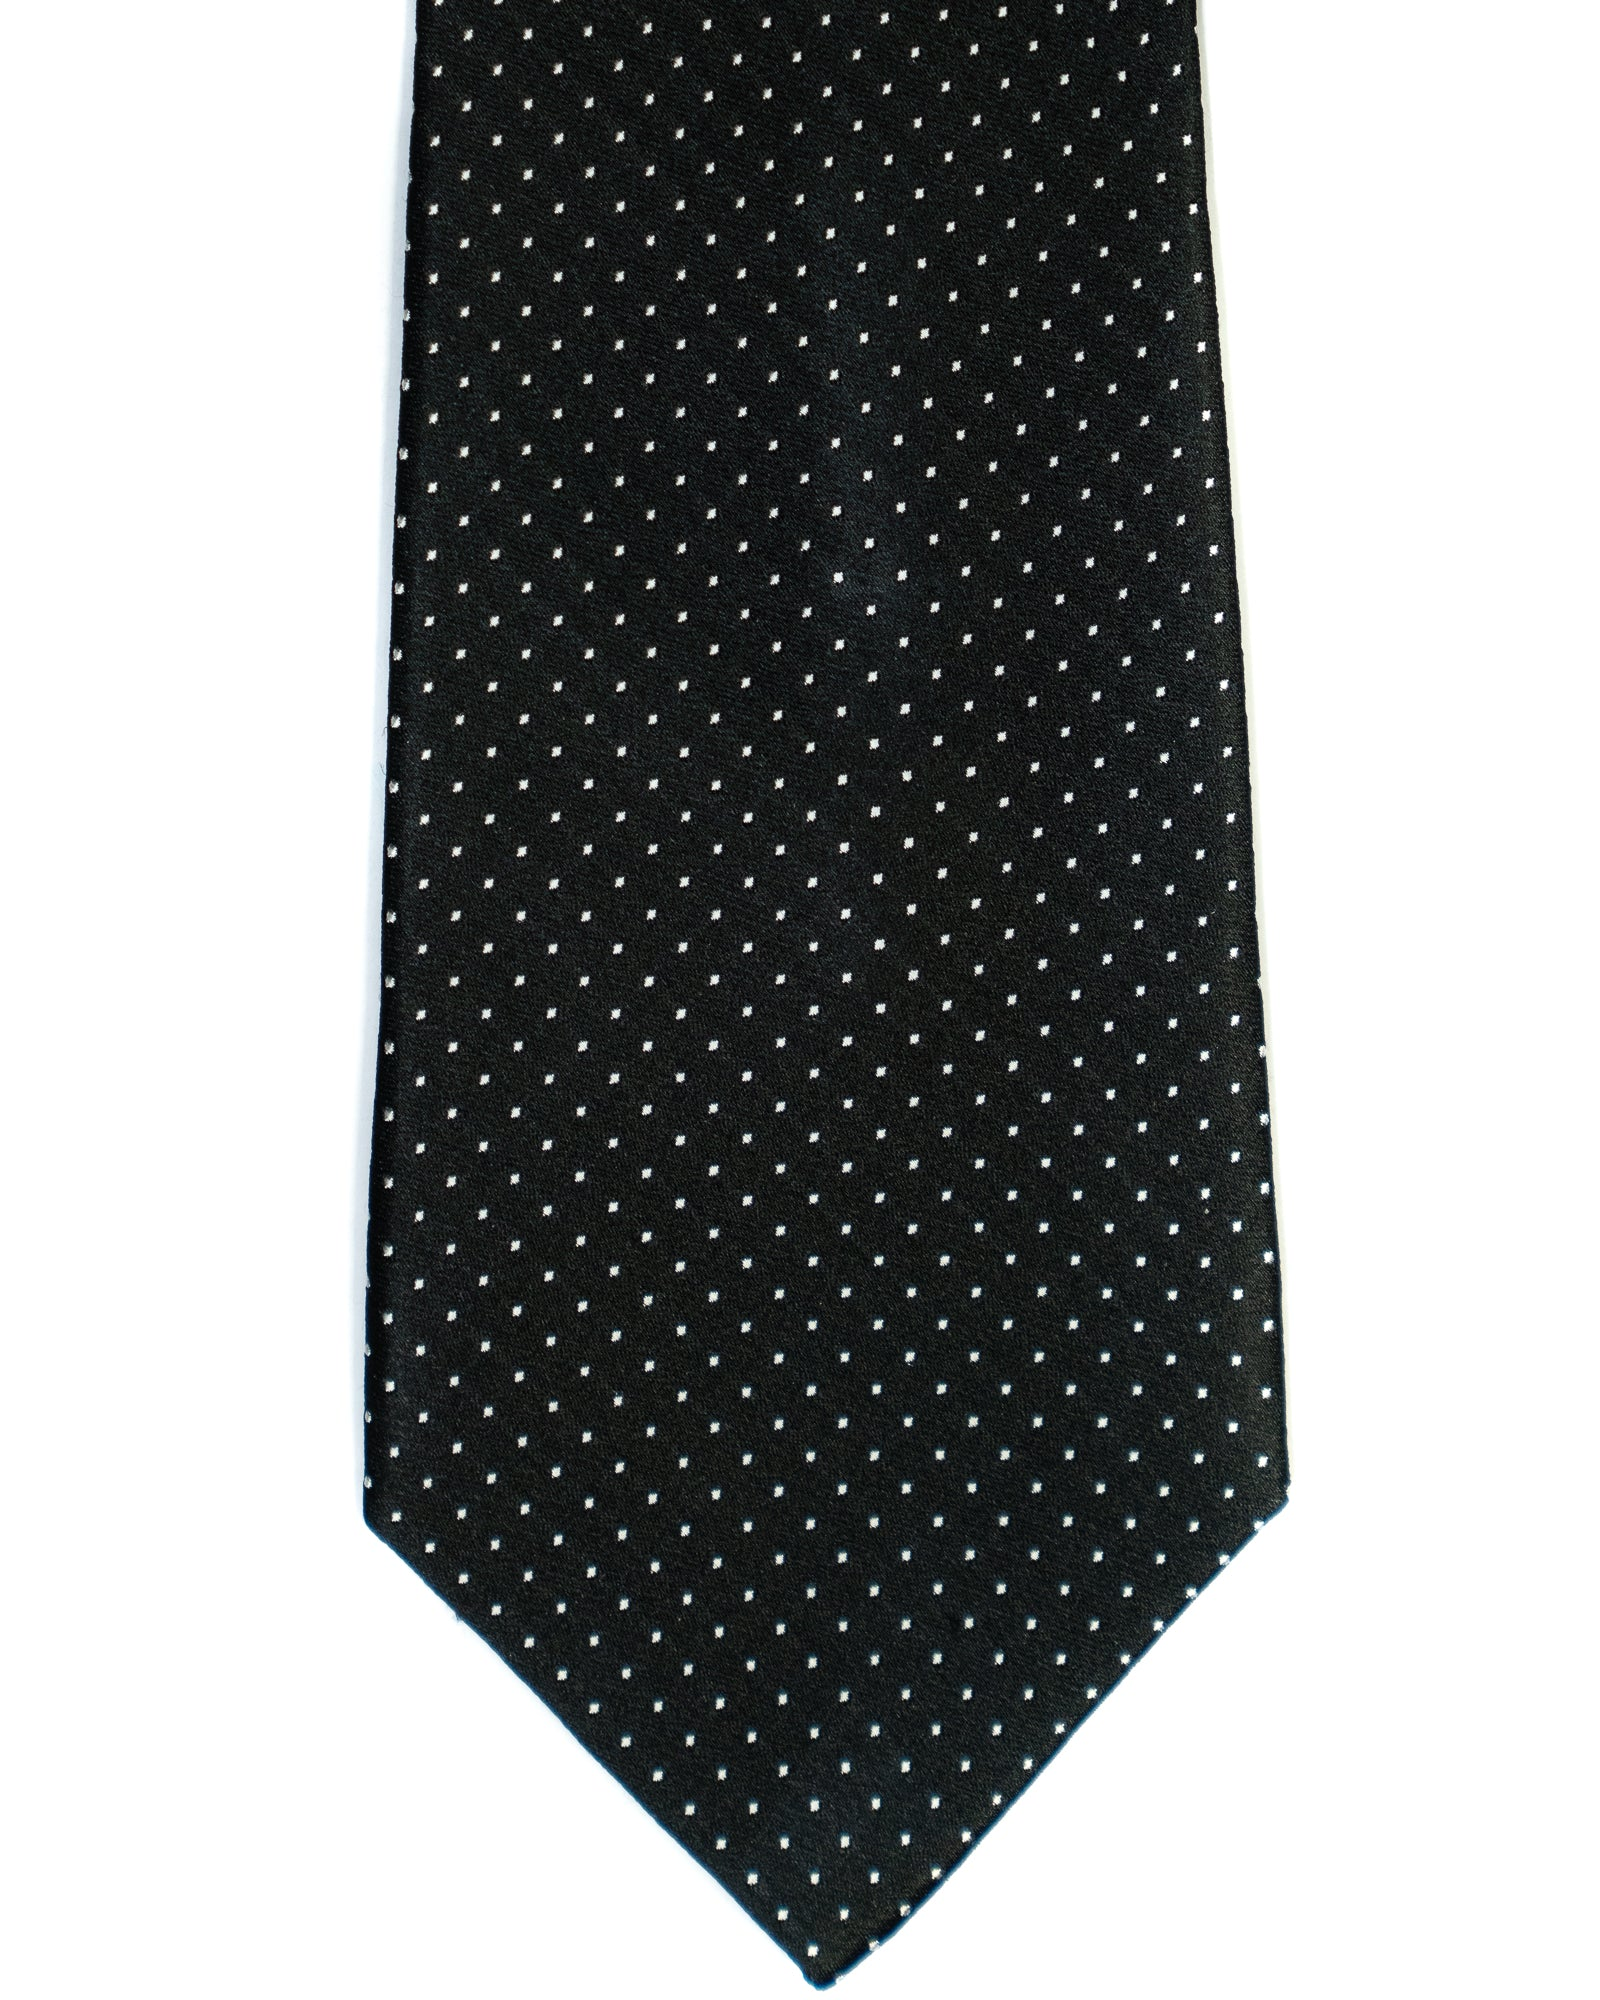 Silk Tie In Black Pin Dot Print - Rainwater's Men's Clothing and Tuxedo Rental